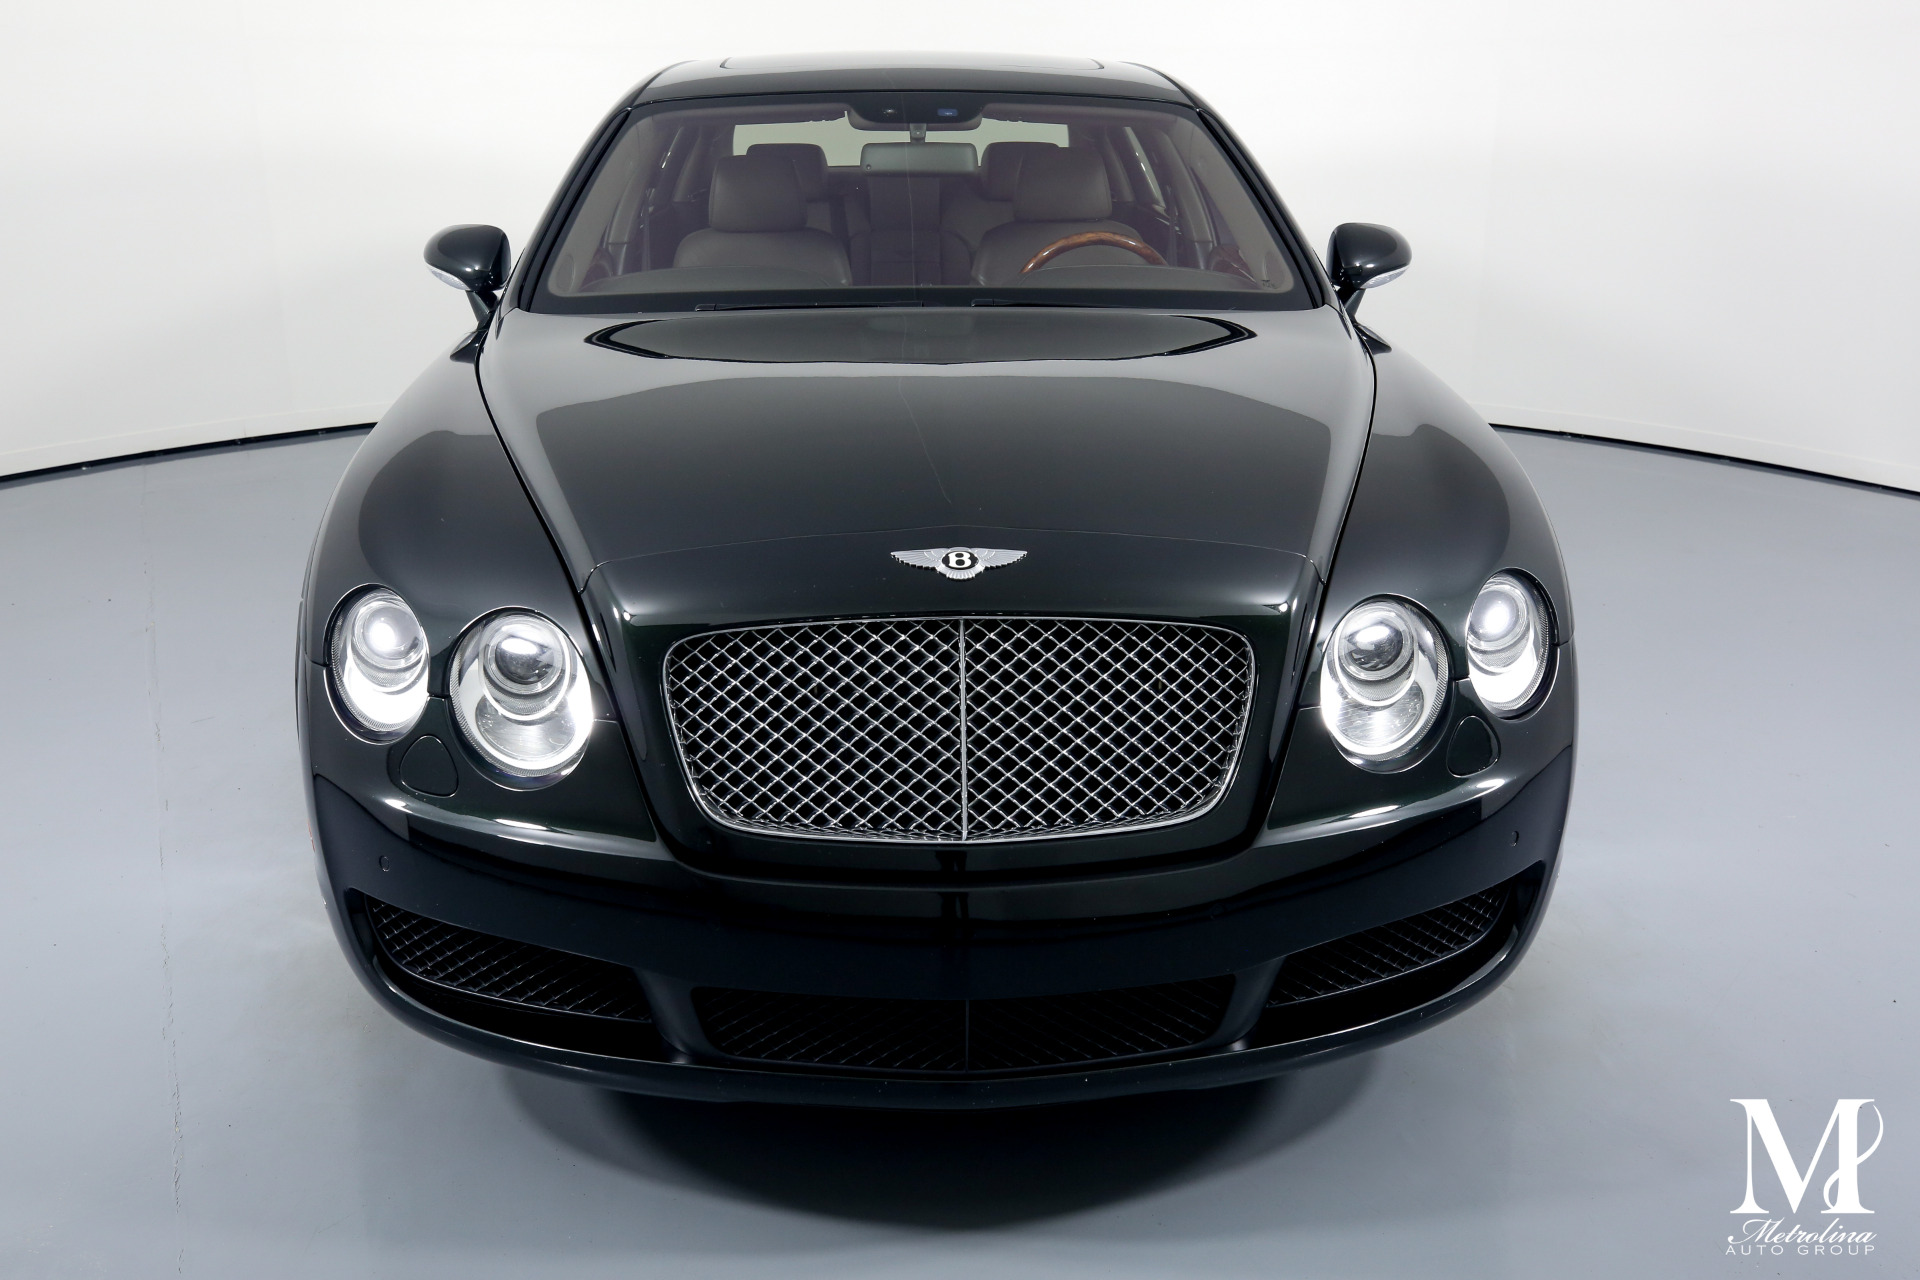 Used 2006 Bentley Continental Flying Spur for sale $37,996 at Metrolina Auto Group in Charlotte NC 28217 - 3